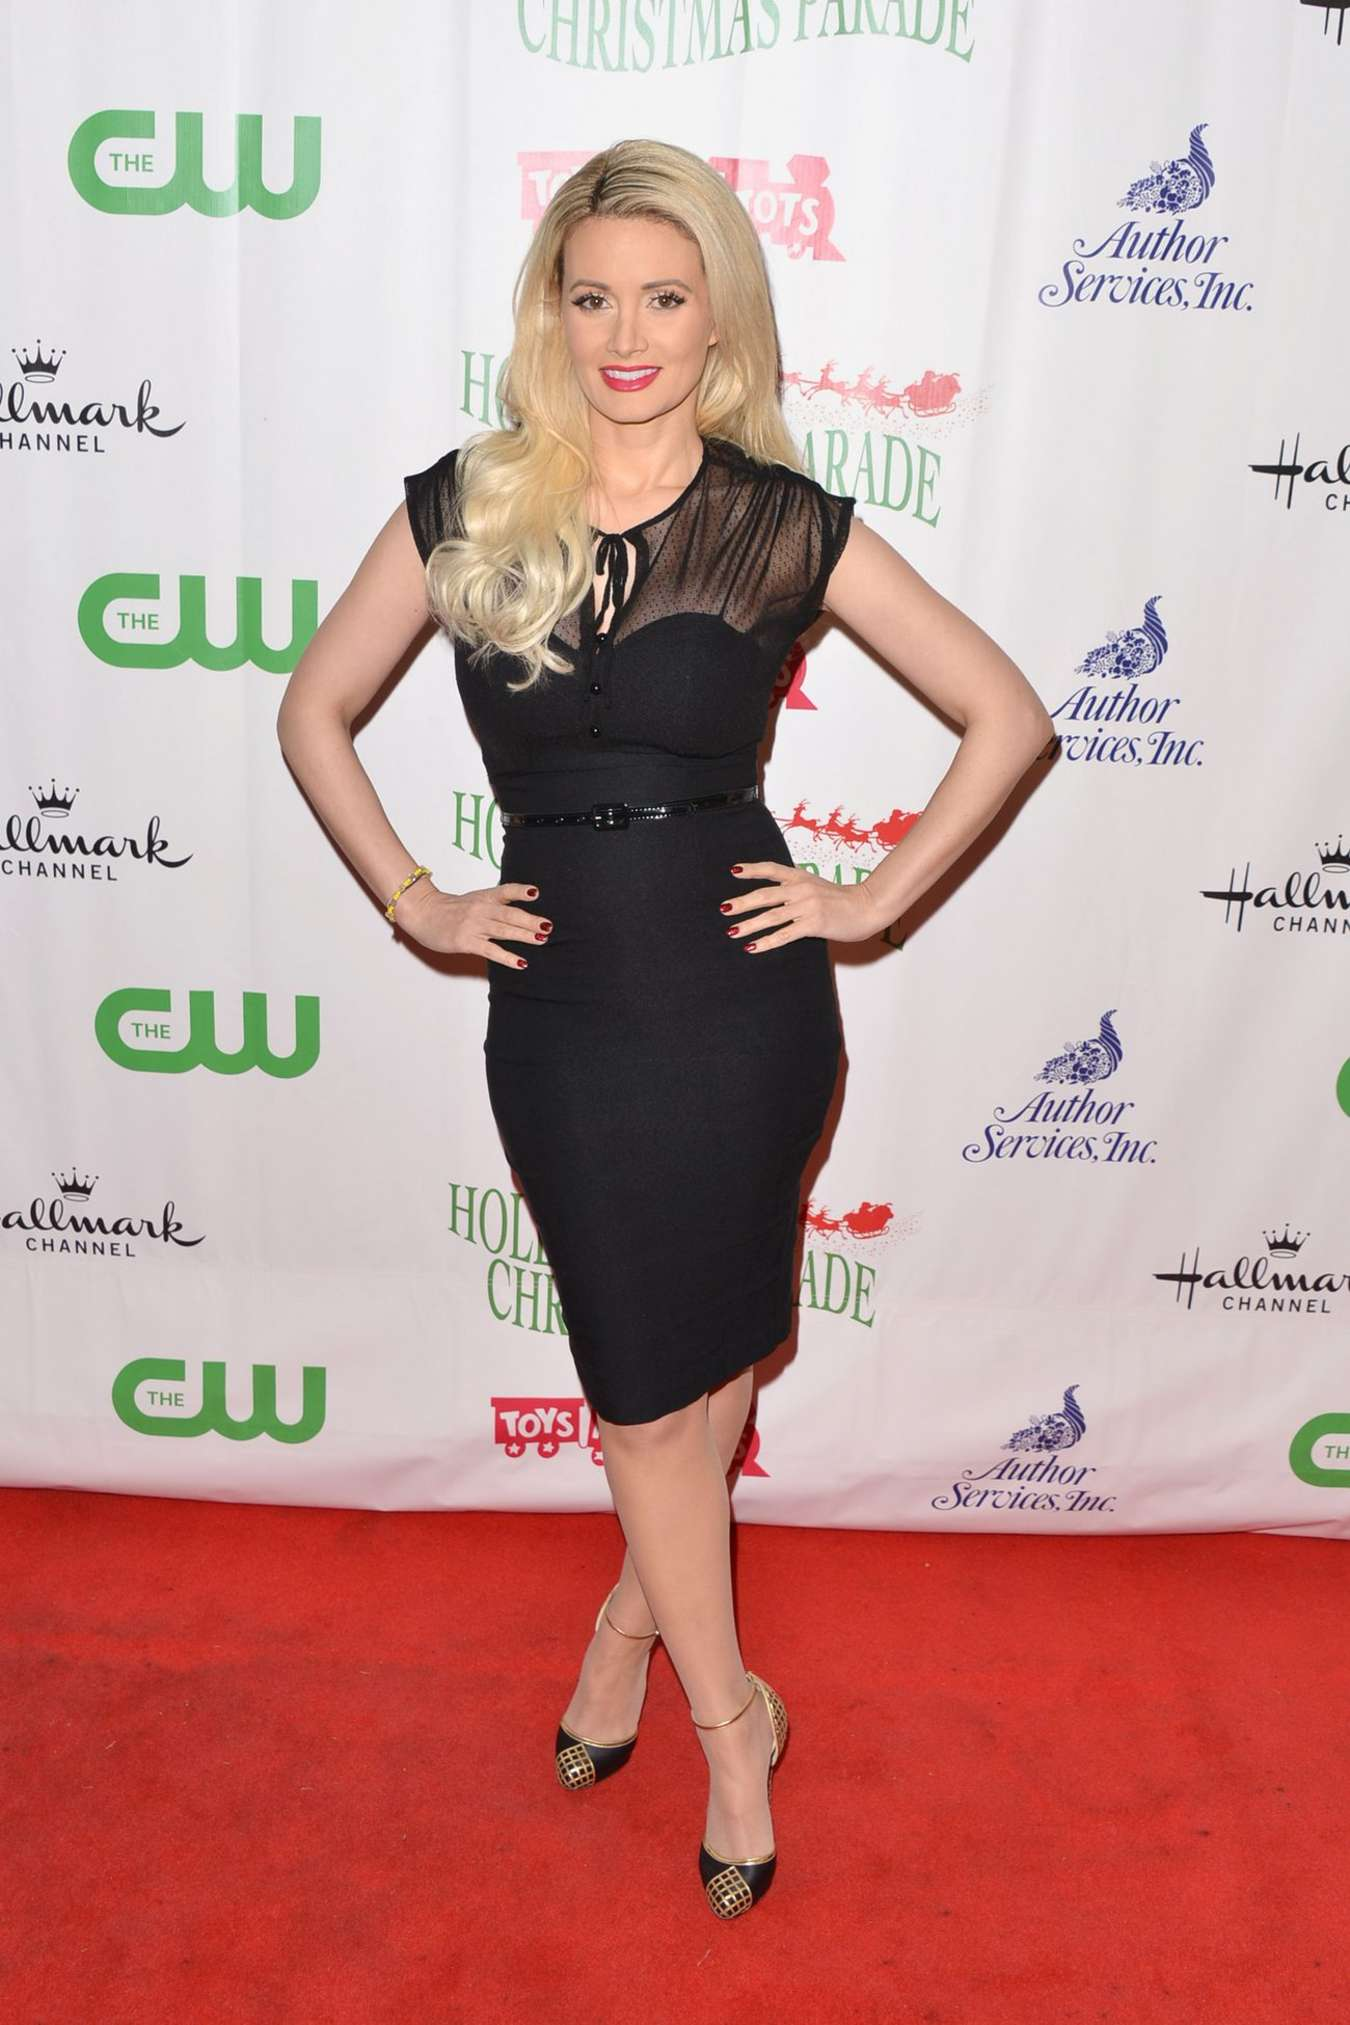 Holly Madison Hollywood Christmas Parade in Hollywood